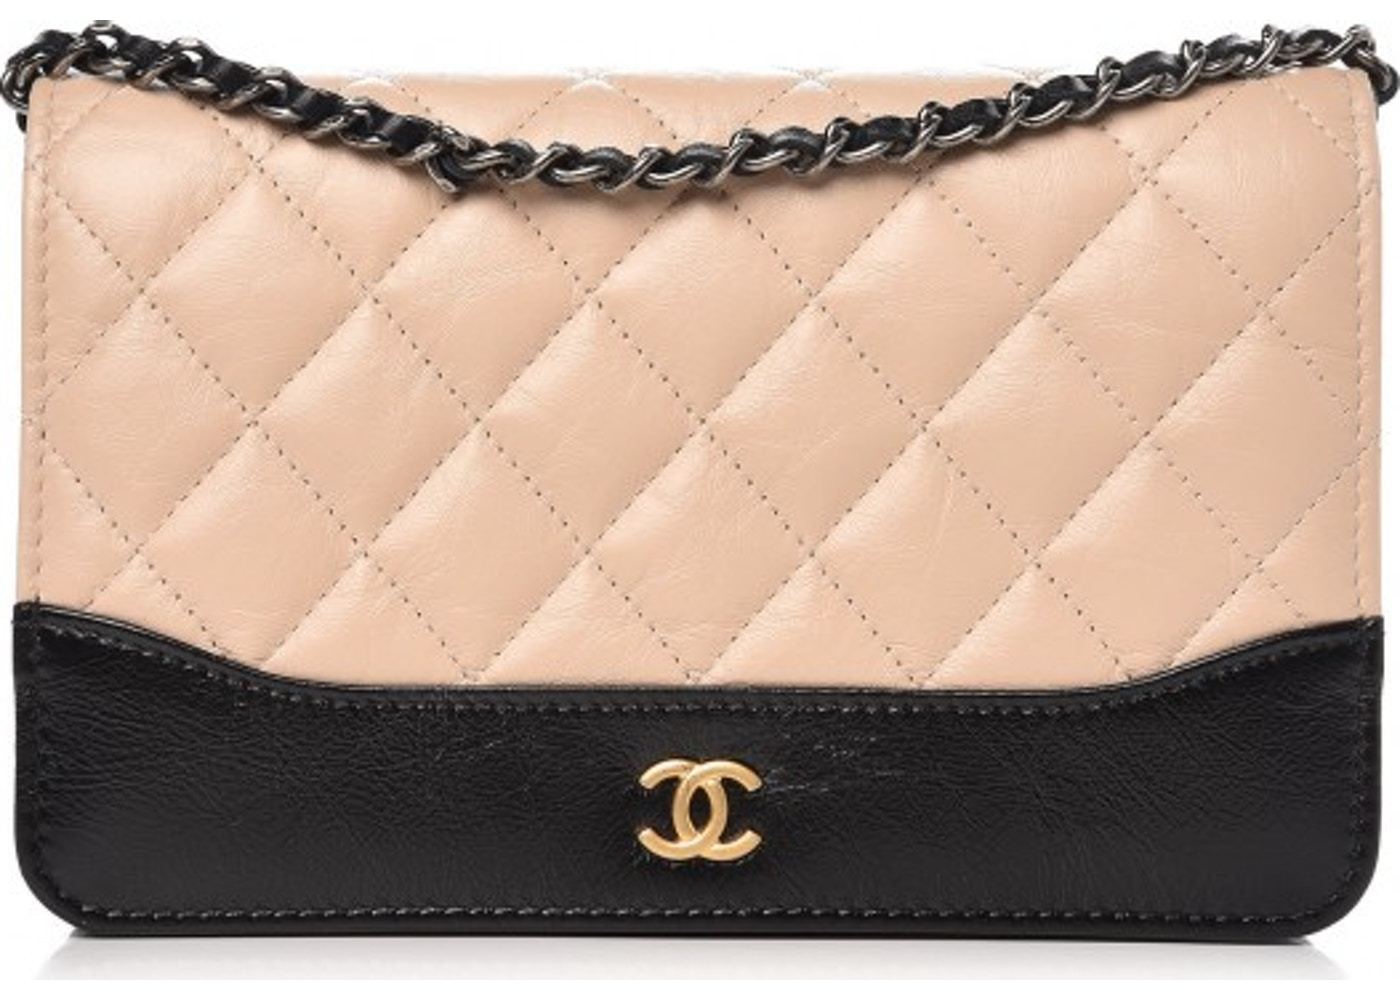 6eb18f725a6a Chanel Gabrielle Wallet On Chain Quilted Aged Calfskin Silver/Gold ...